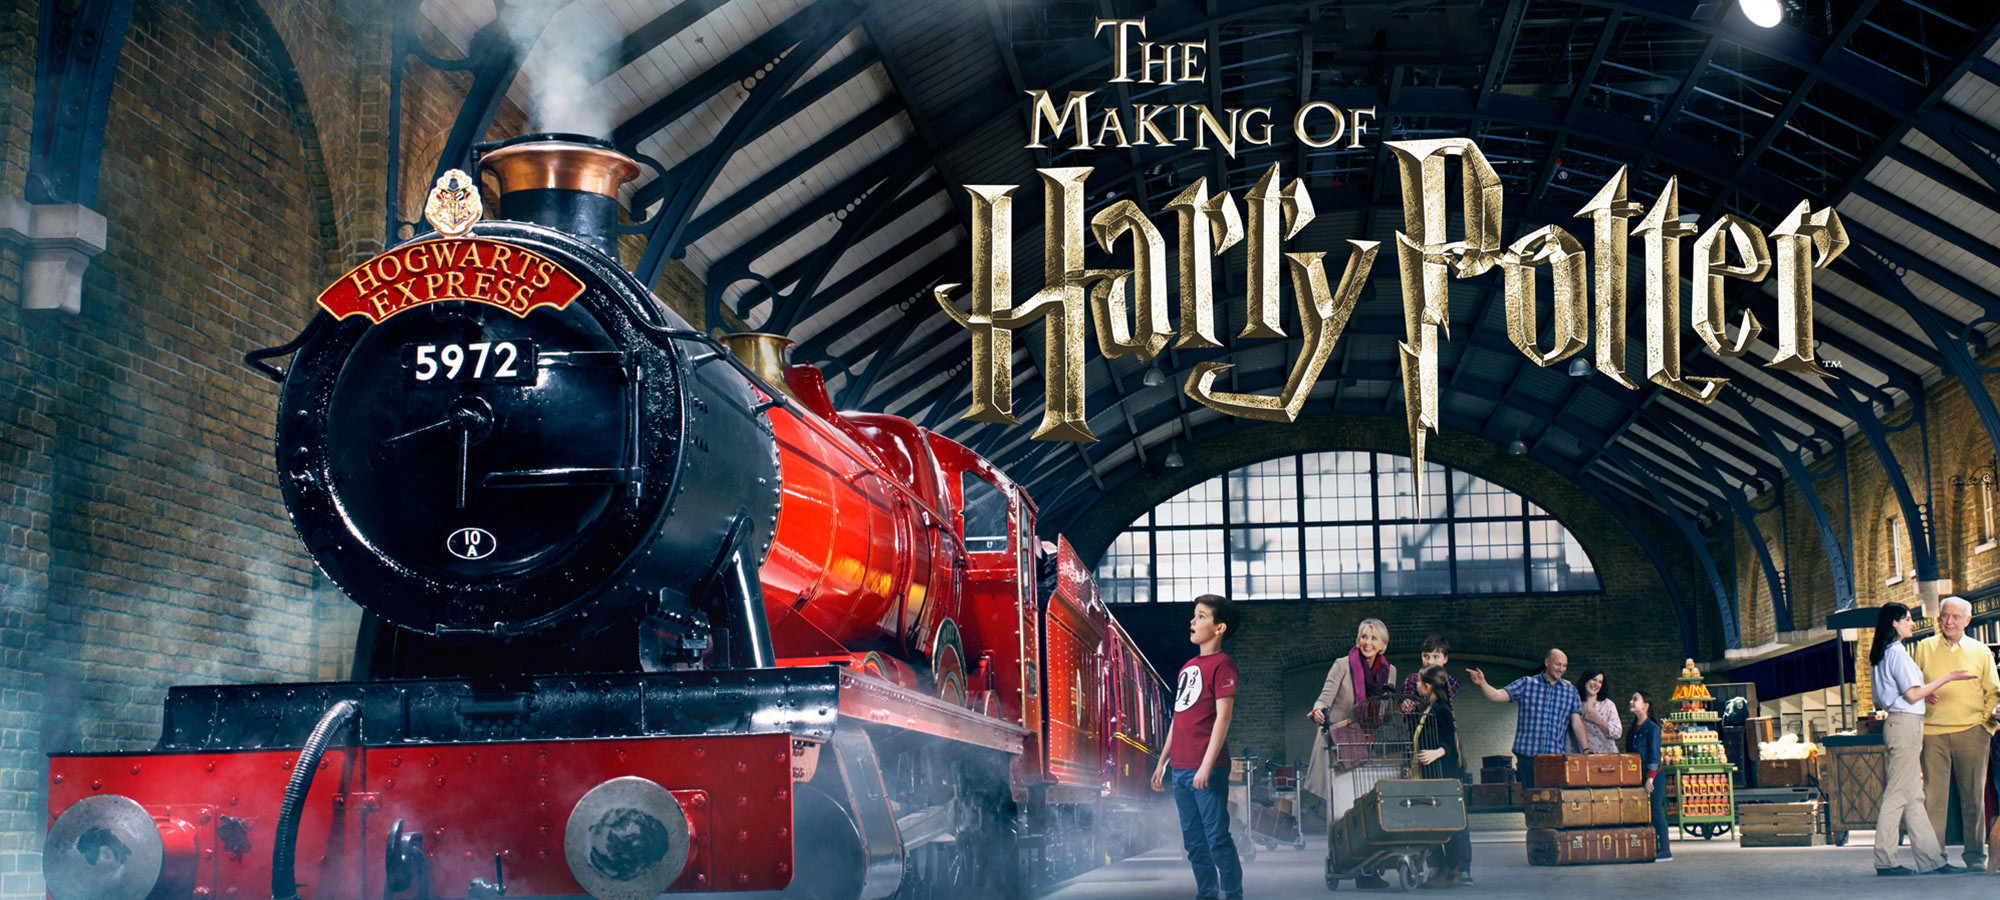 The Warner Bros Studio Tour London Making of Harry Potter package includes a return trip from London to the Warner Bros Studio and a professionally guided tour of the studio. During your guided tour, you will discover all aspects of the creation of the popular film series.